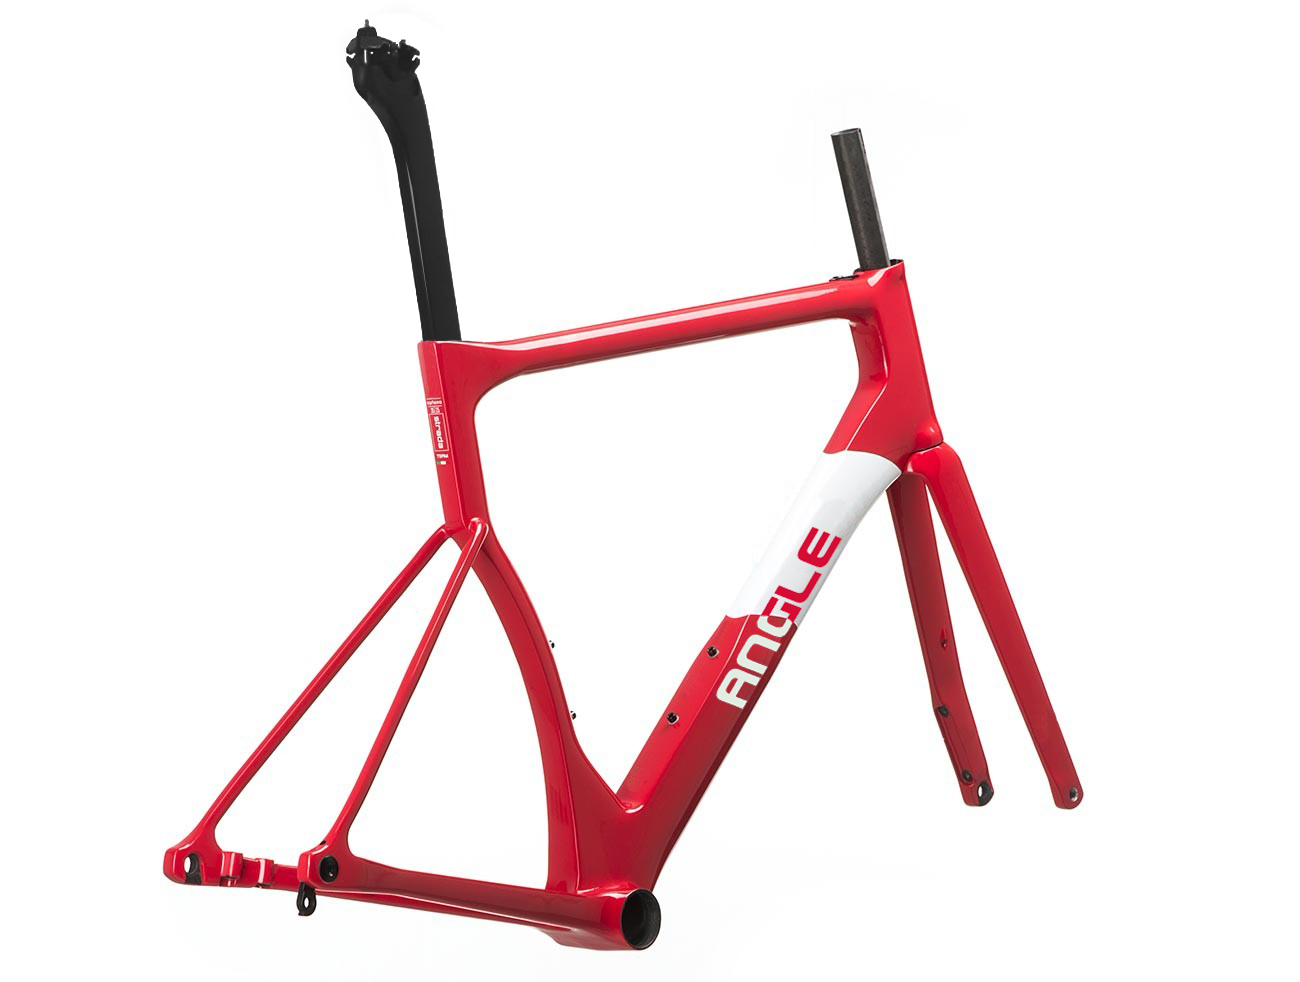 2018 T800 CARBON FIBER ENDURANCE ROAD DISC BRAKE BIKE FRAMESET